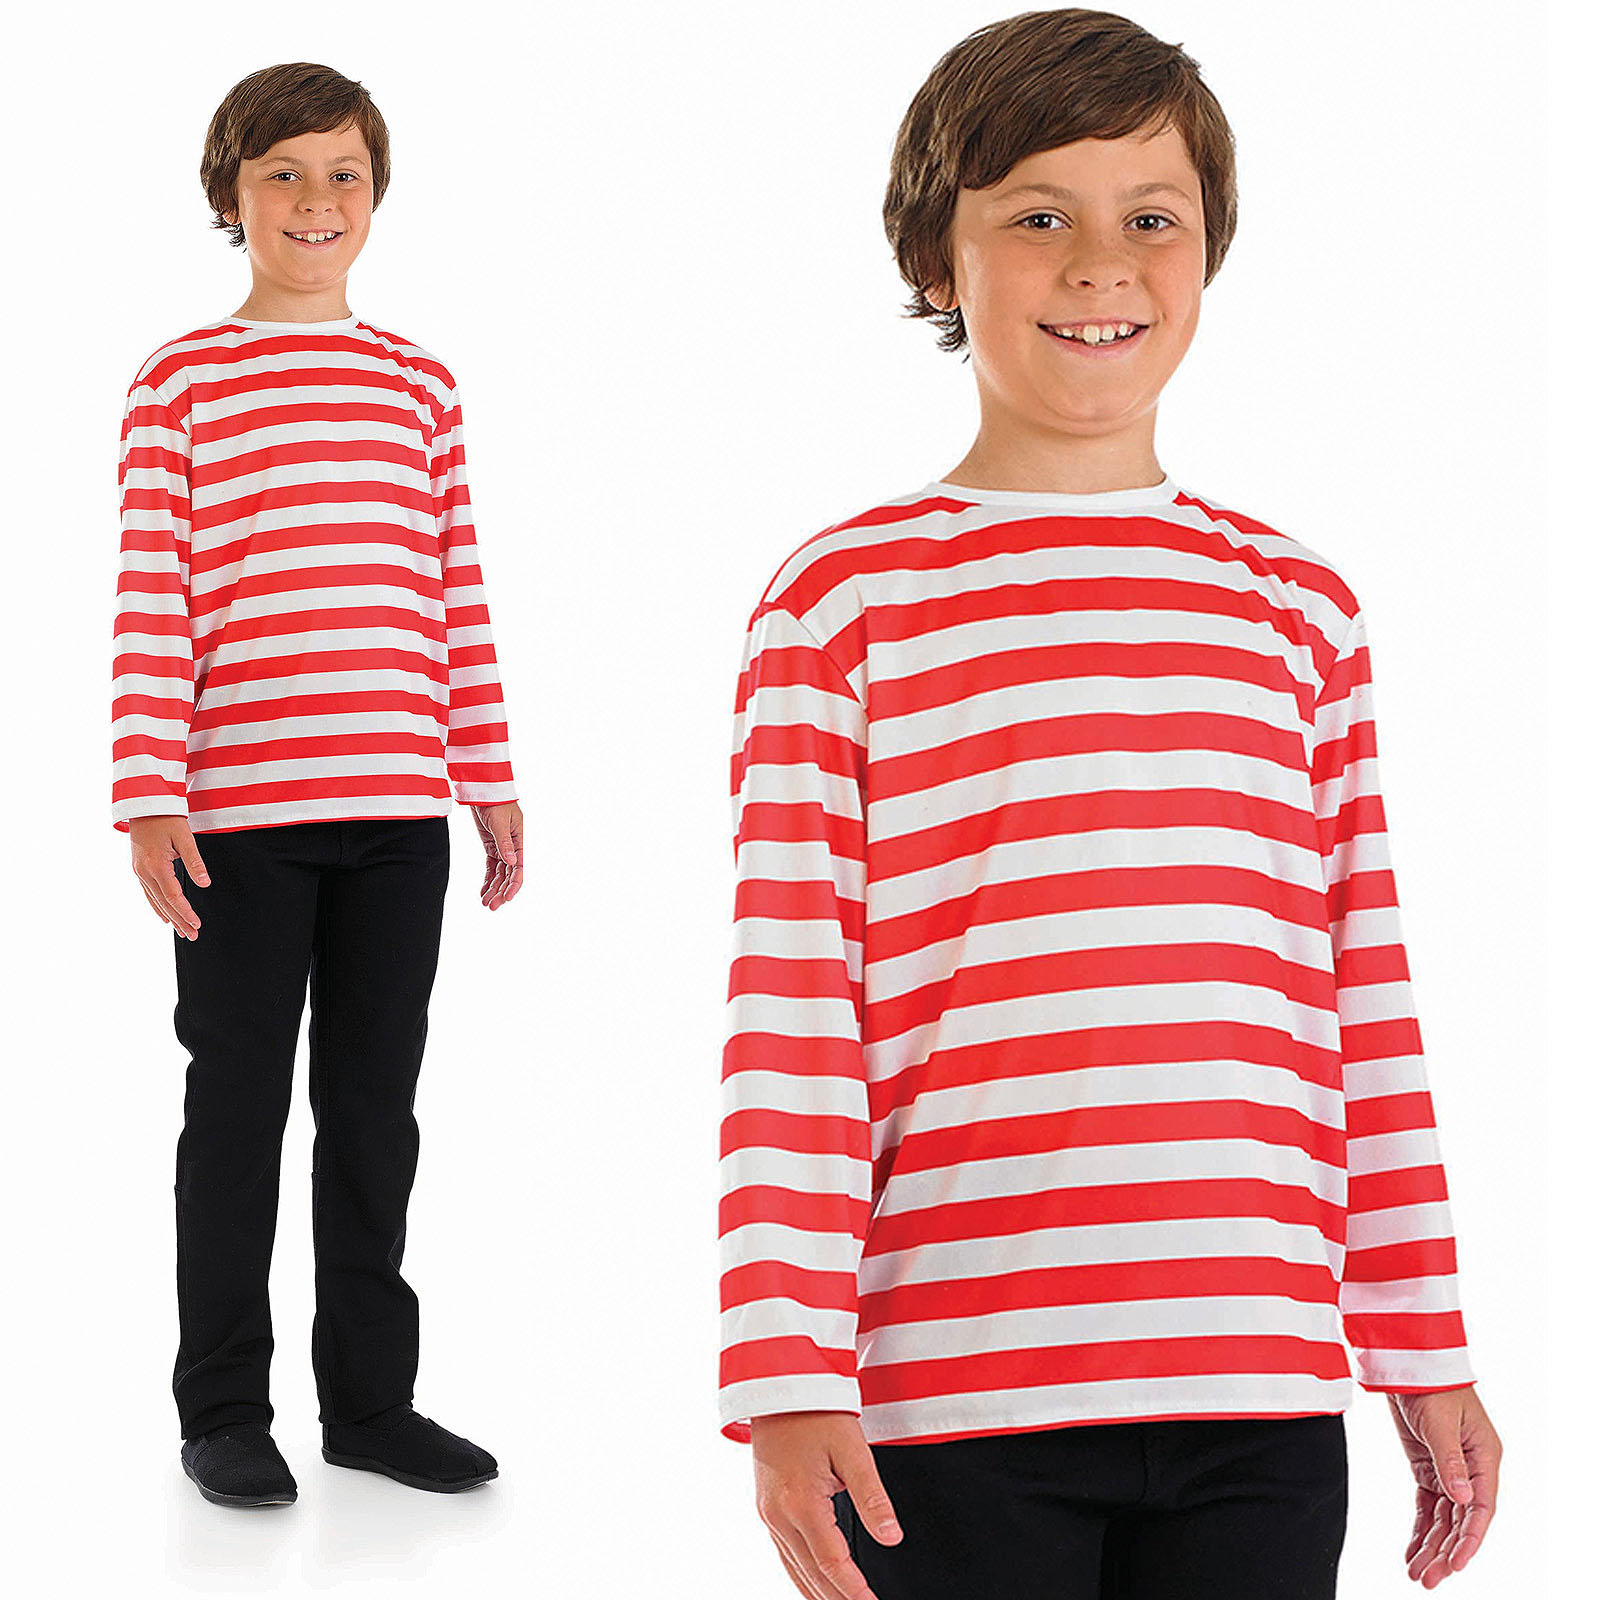 Childrens-Red-amp-White-Stripe-Jumper-Fancy-Dress-Costume-Book-Week-4-12-Yrs